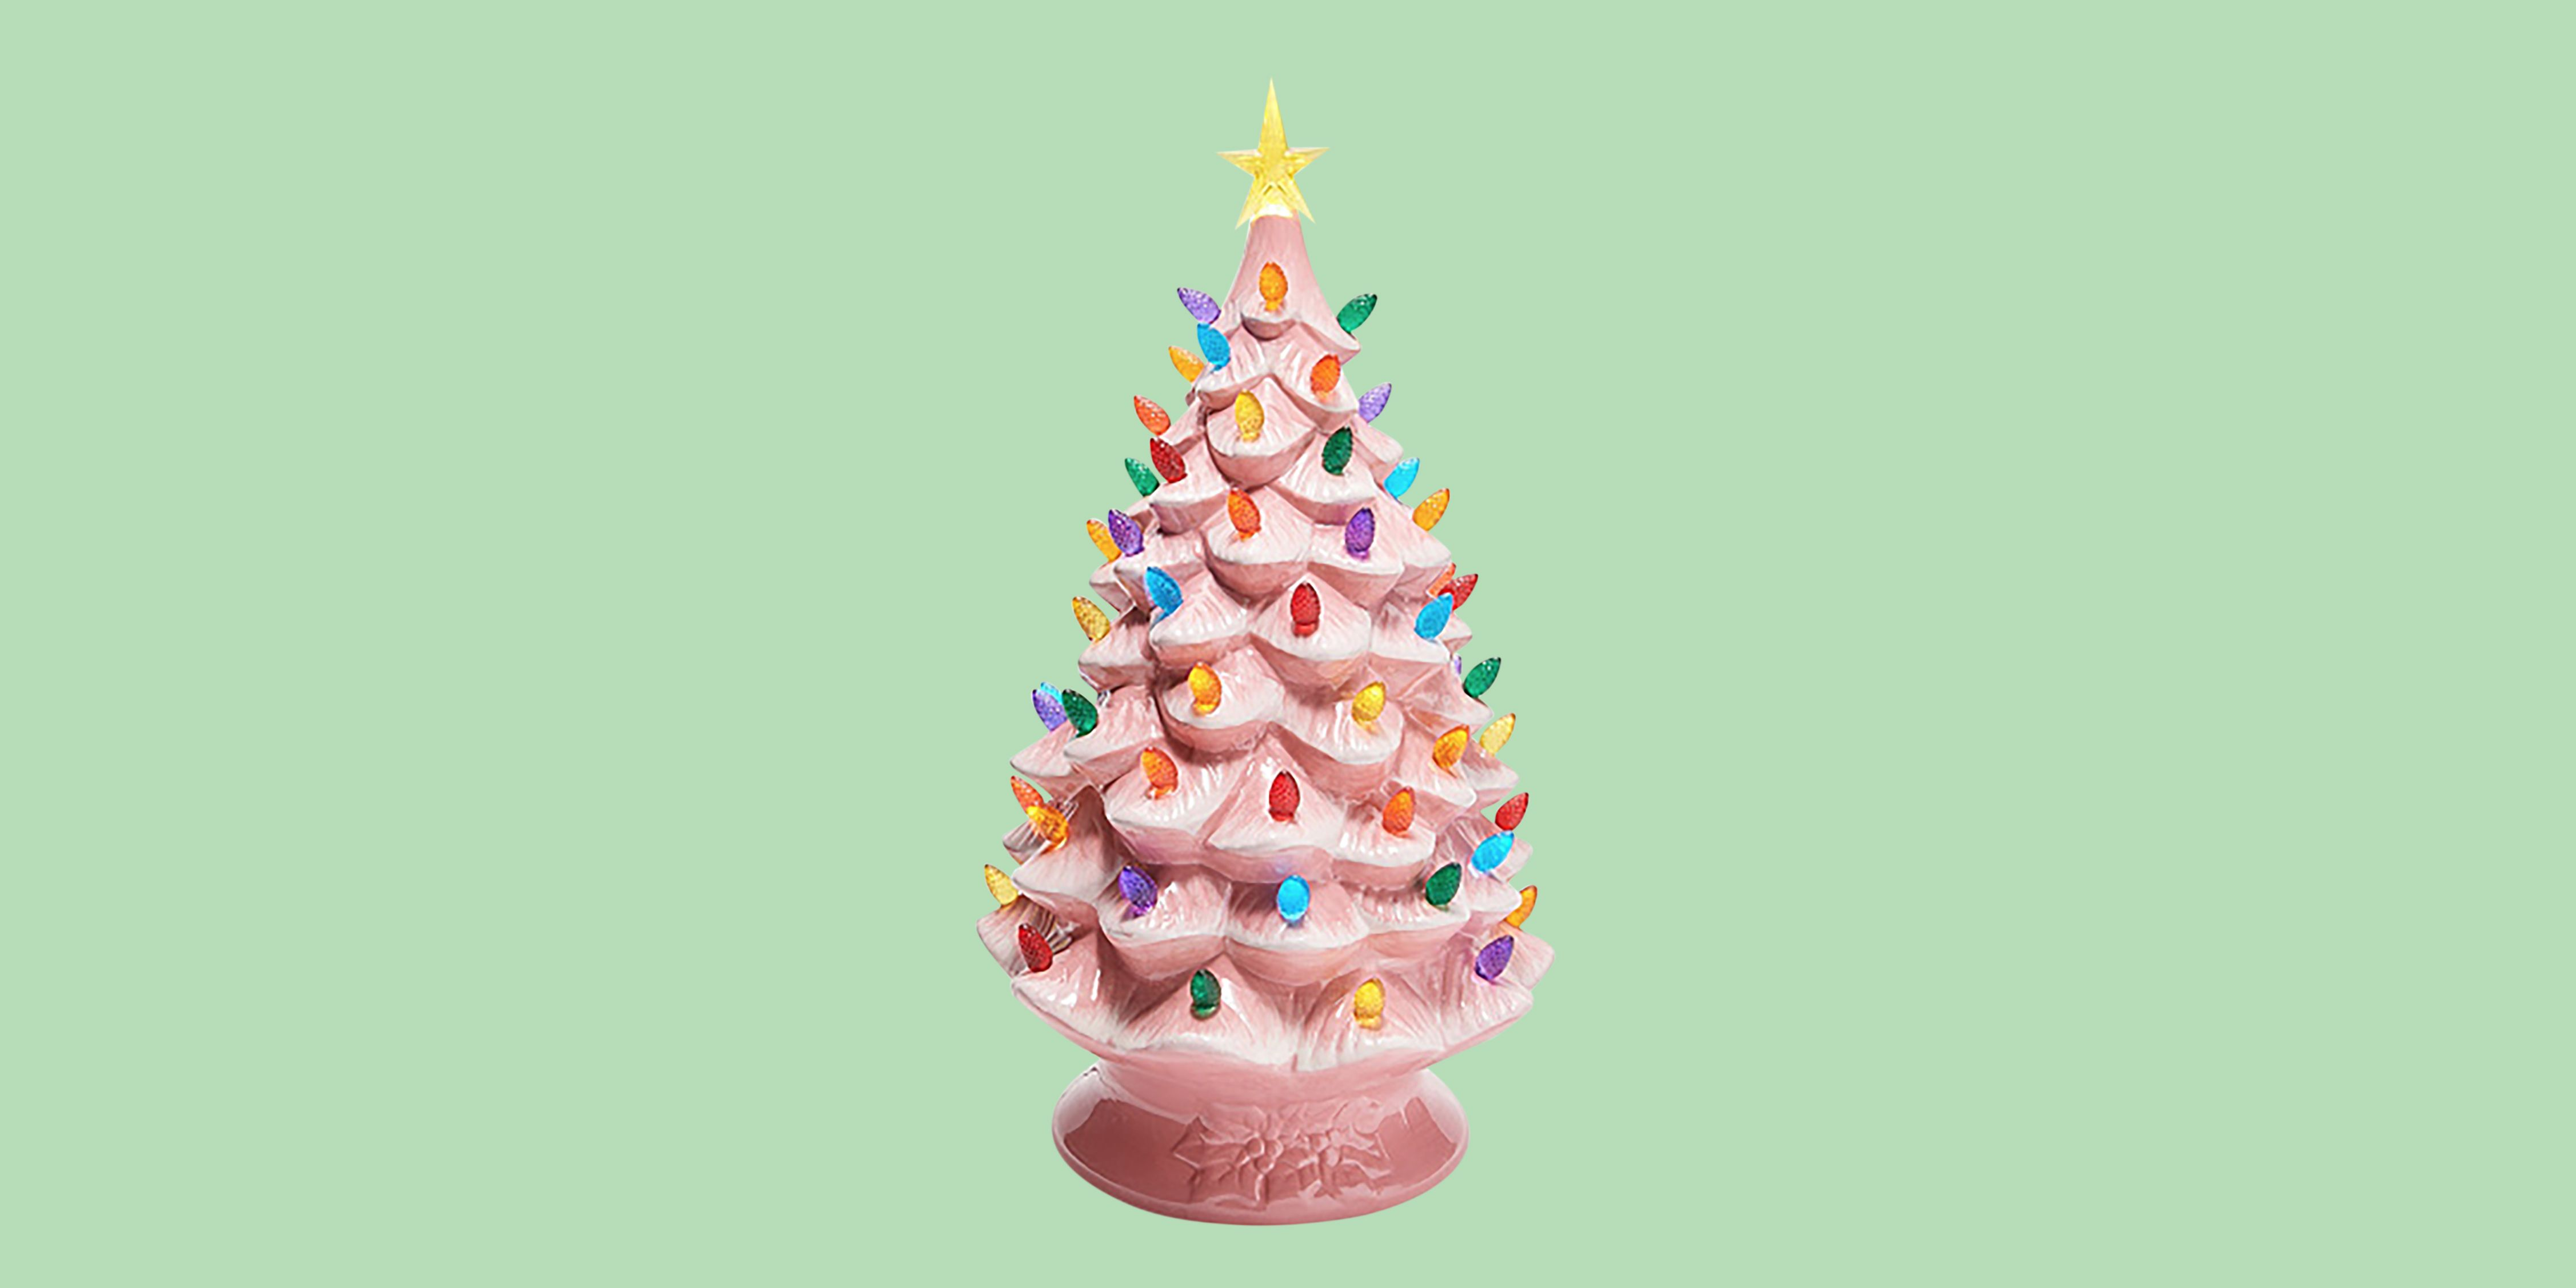 These Pink Ceramic Trees Are the Cutest Valentine's Day Decorations